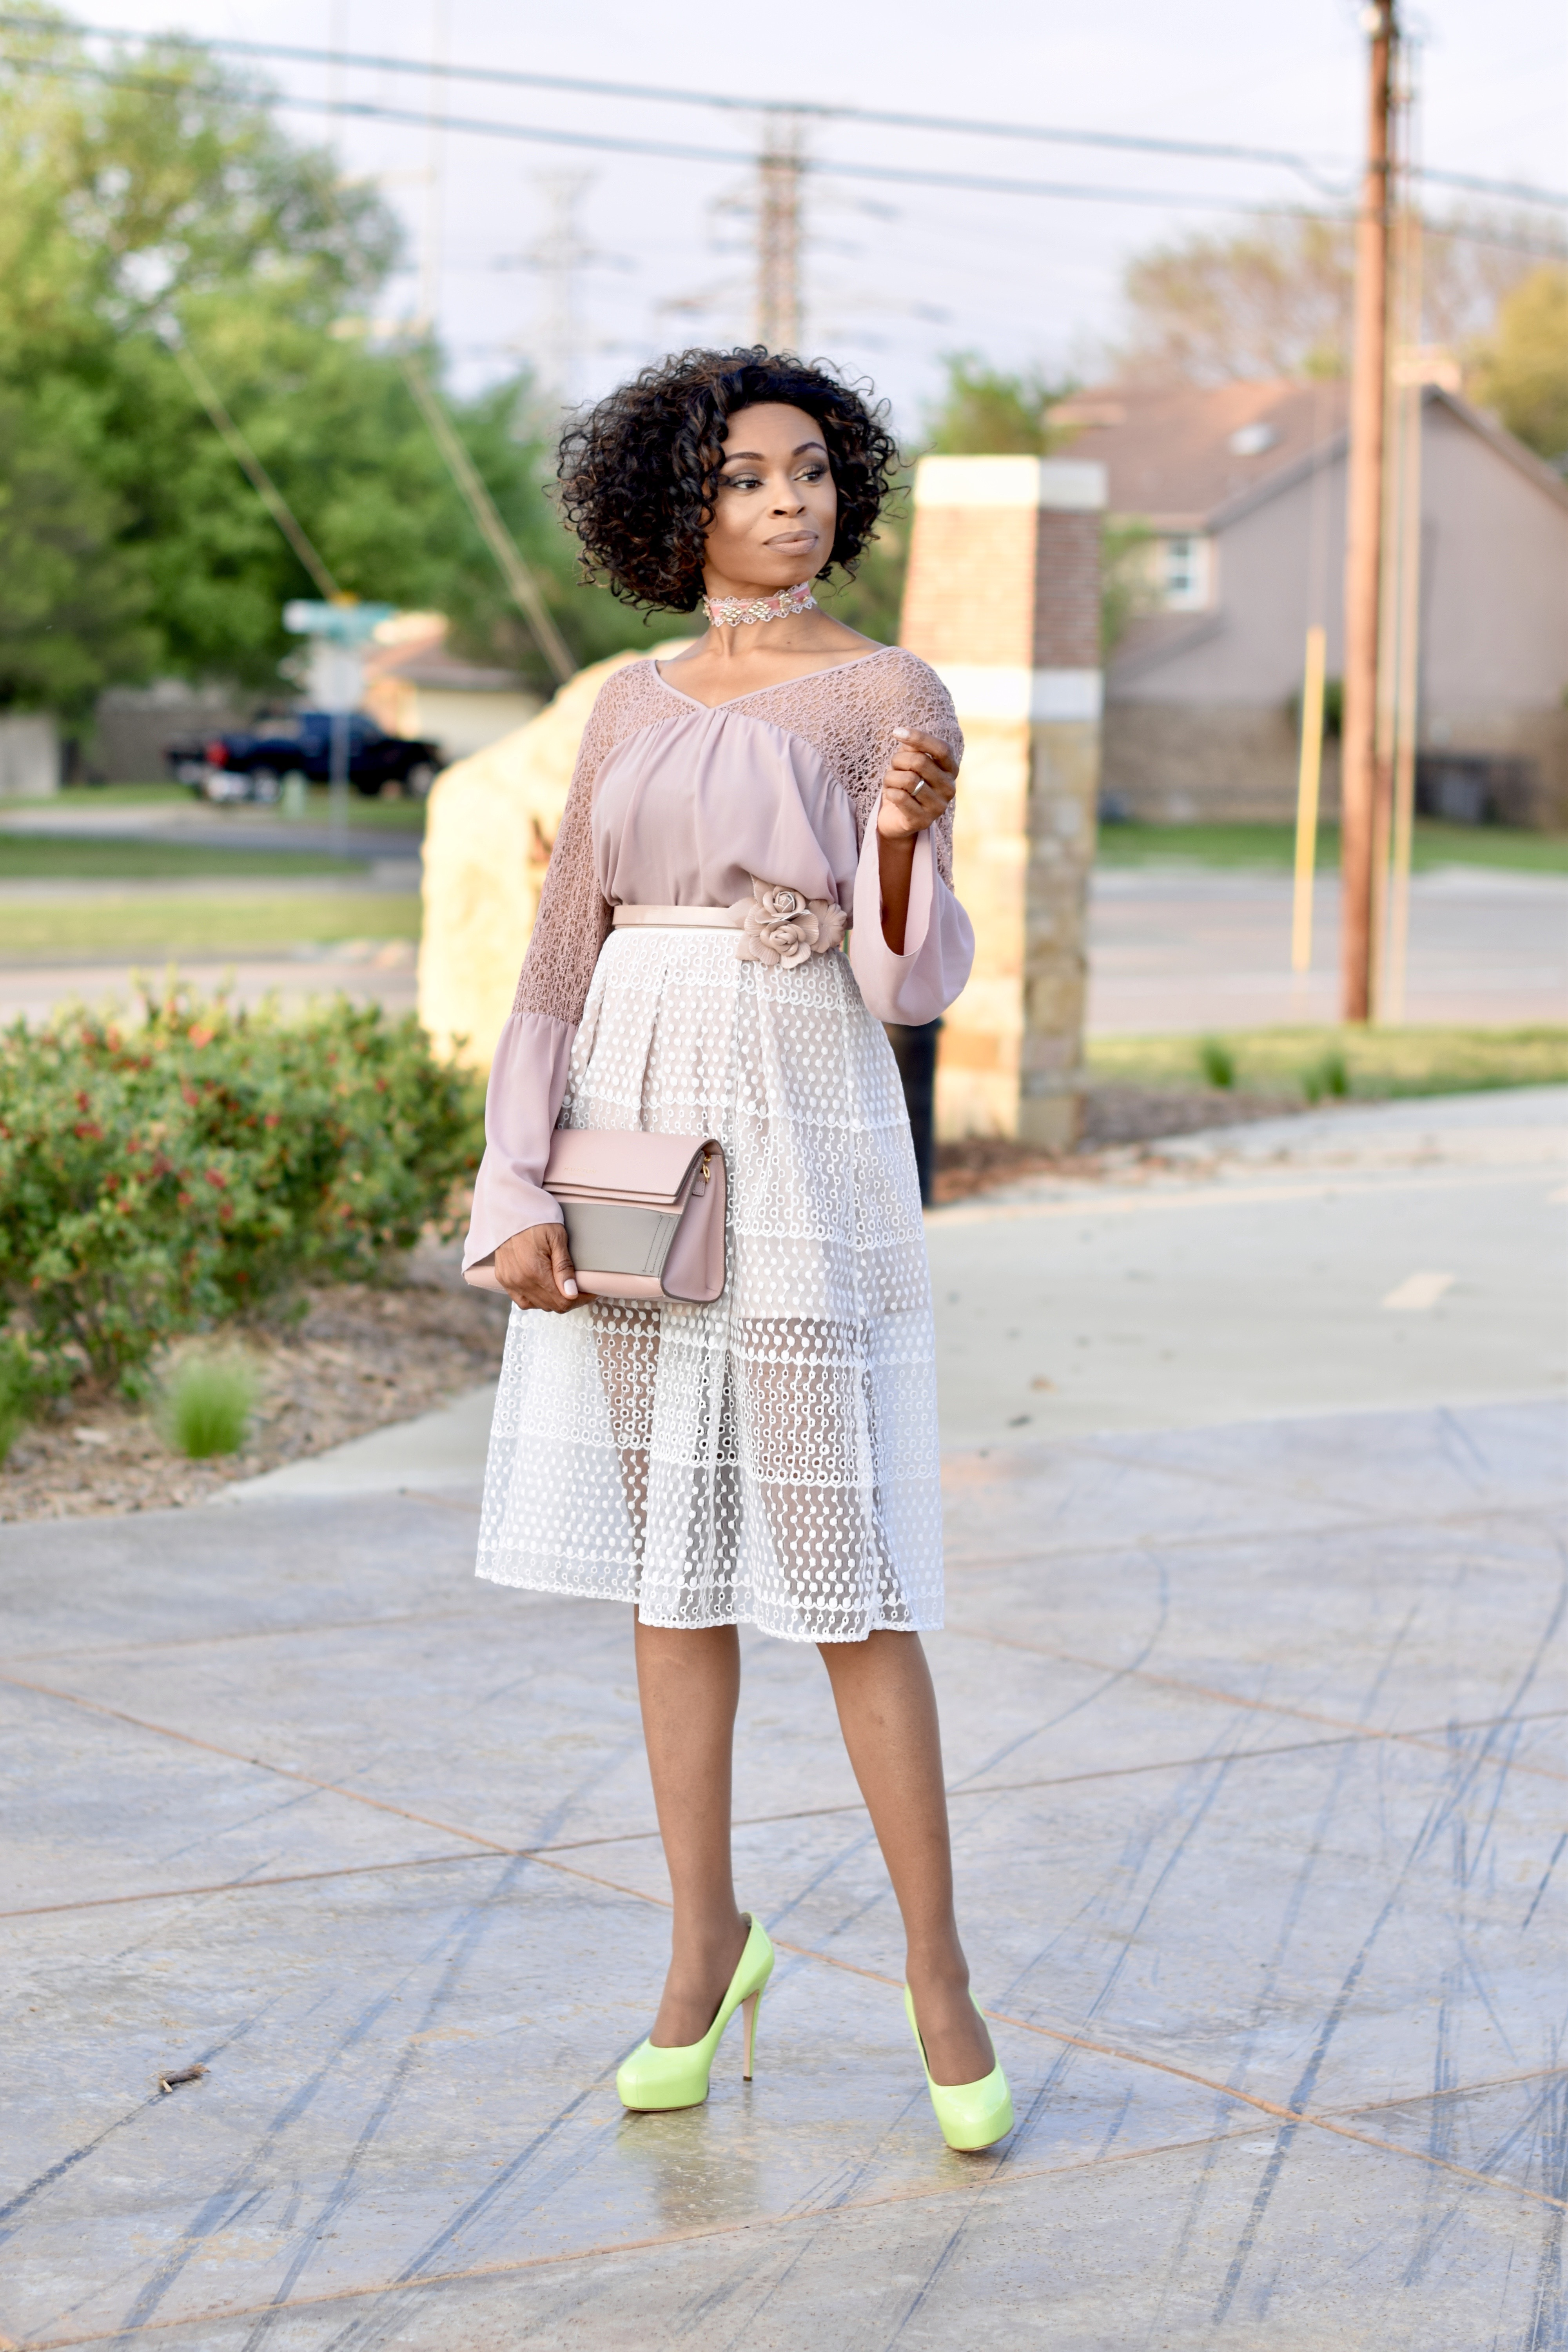 How to style a midi skirt-Easter Inspo Posted by Vivellefashion